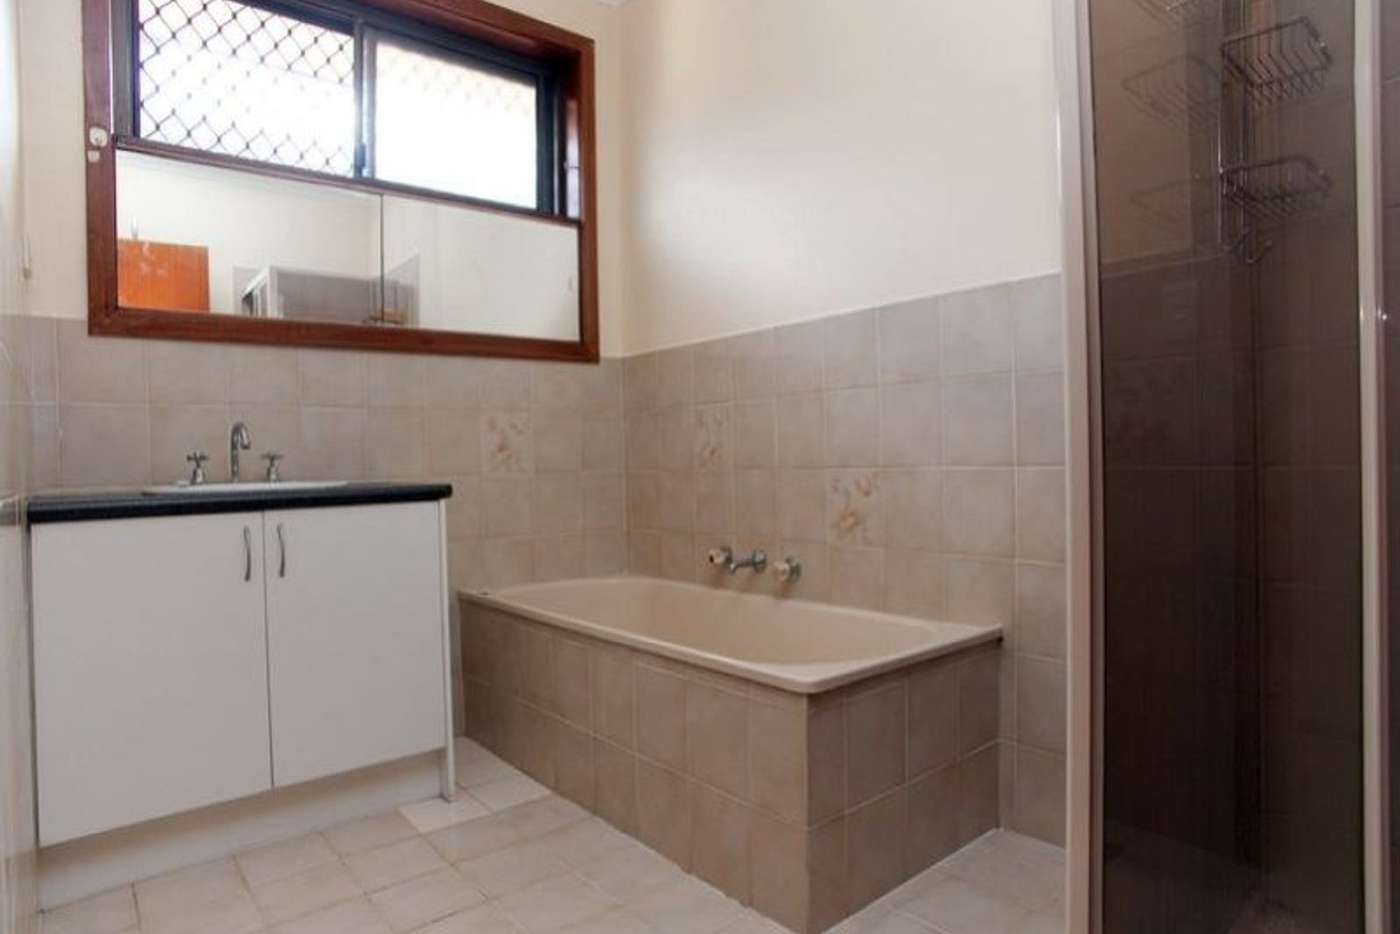 Seventh view of Homely house listing, 69 Barry Road, Thomastown VIC 3074